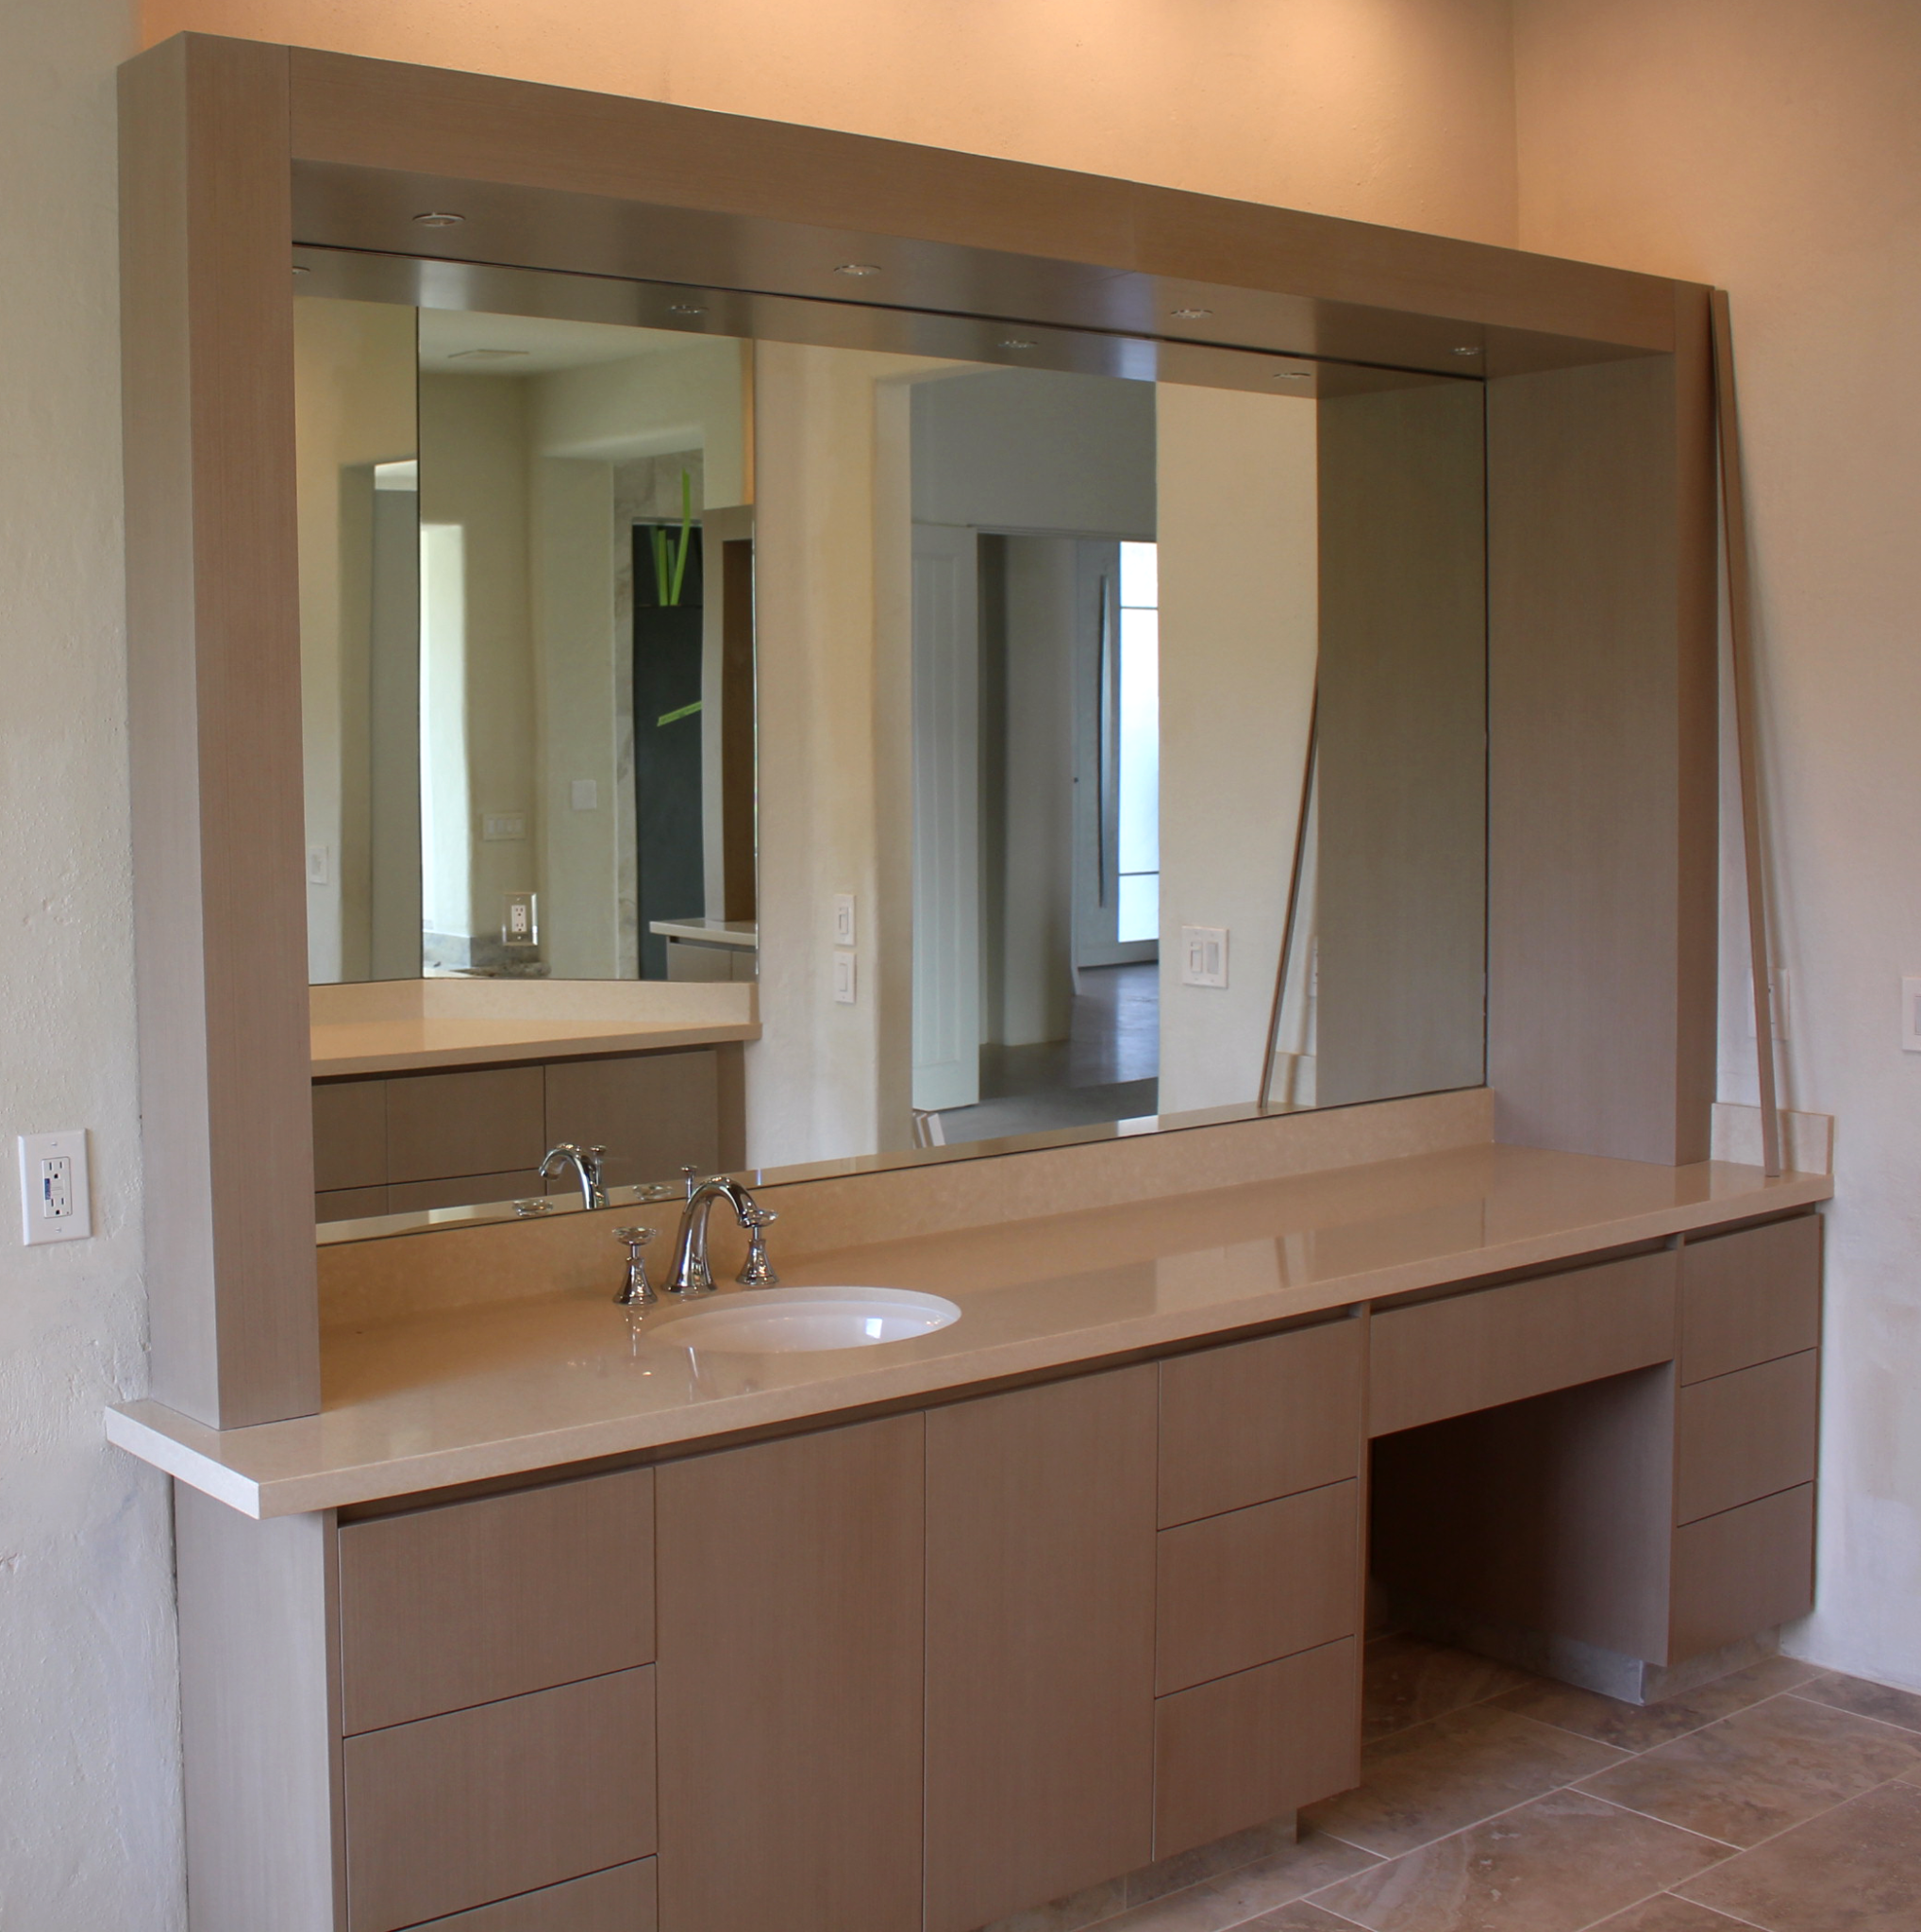 3 Way Bathroom Mirror Vanity Vanities Cabinet Mirrors A Cut Above Gl